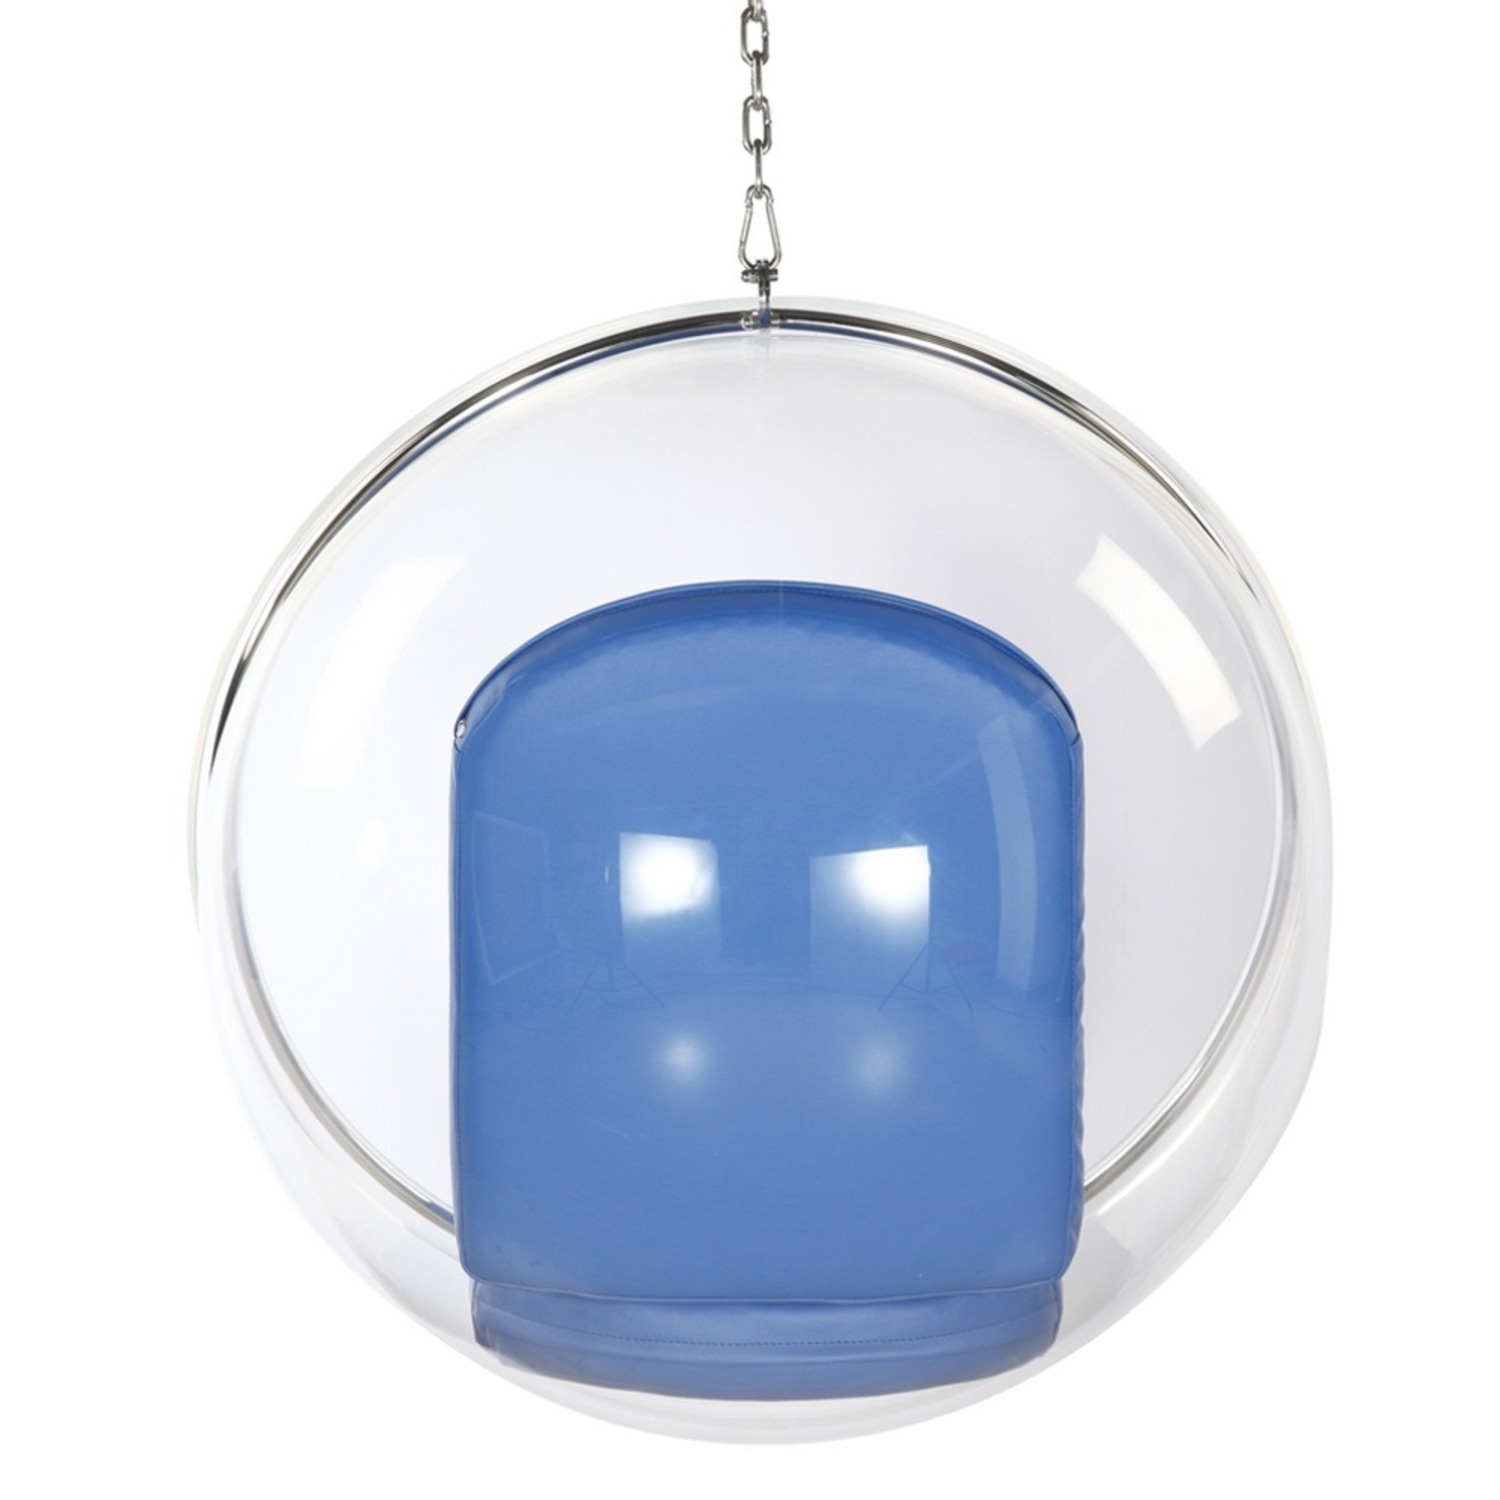 Hanging Chair In Clear Acrylic & Blue PU Leather - image-2